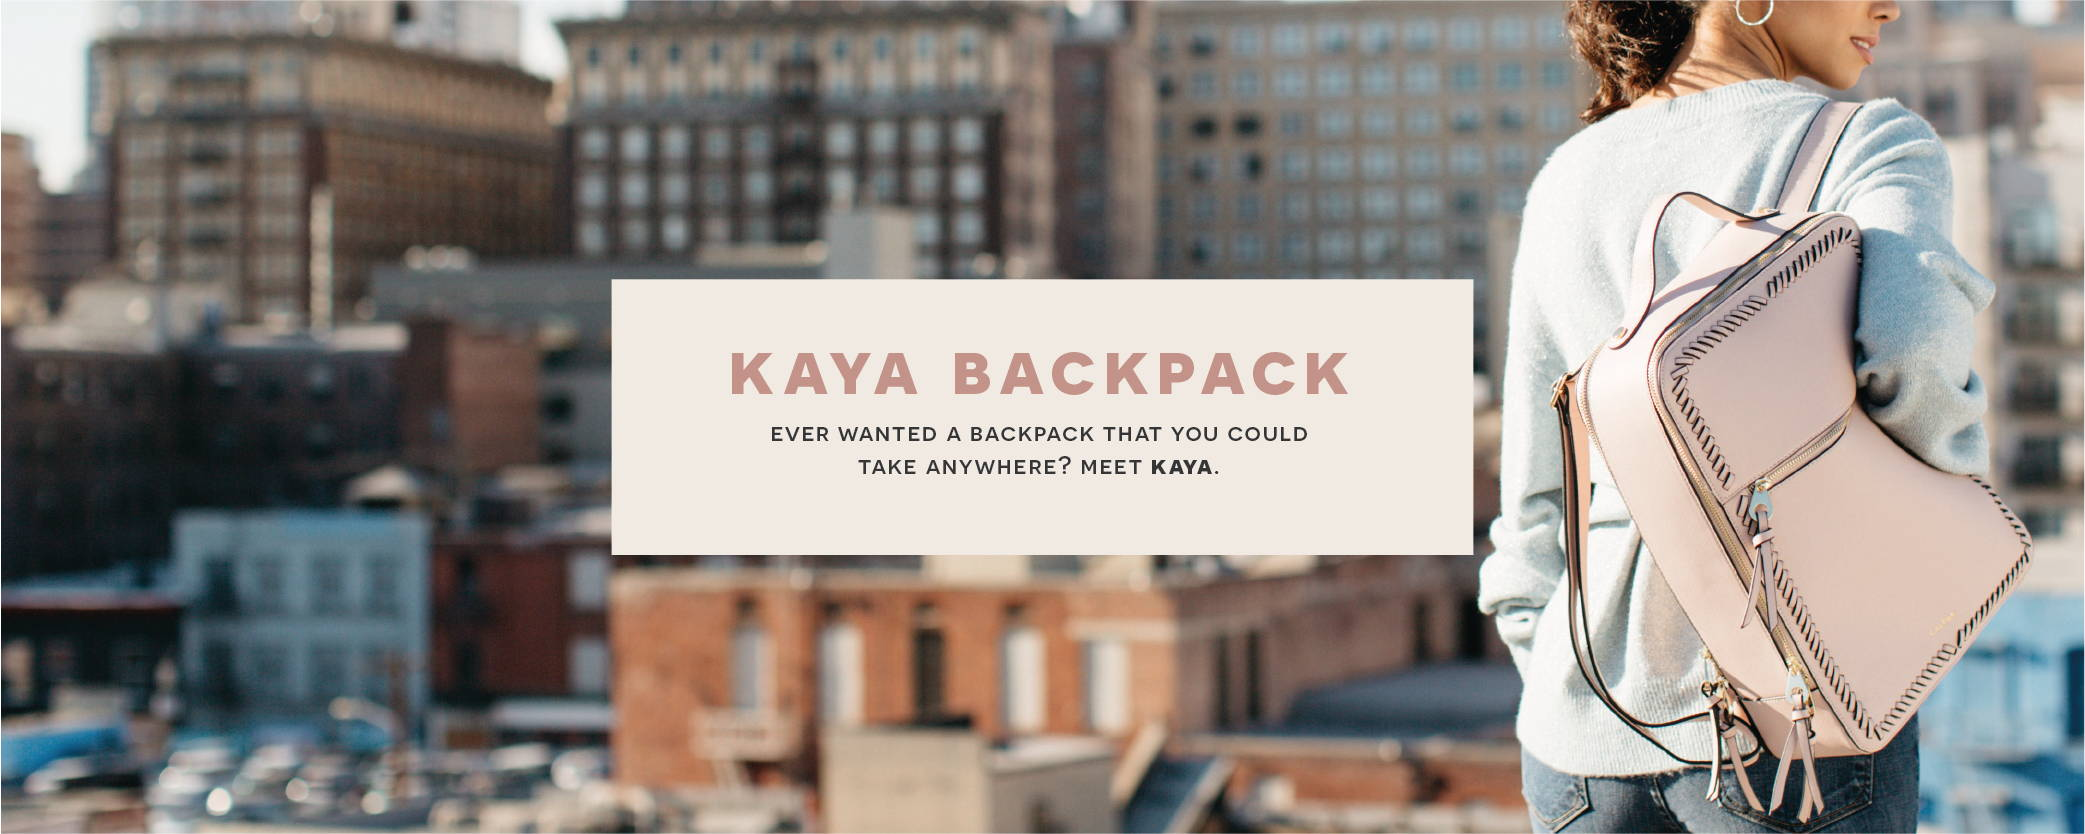 KAYA BACKPACK: Ever wanted a backpack that you could take anywhere? Meet Kaya.